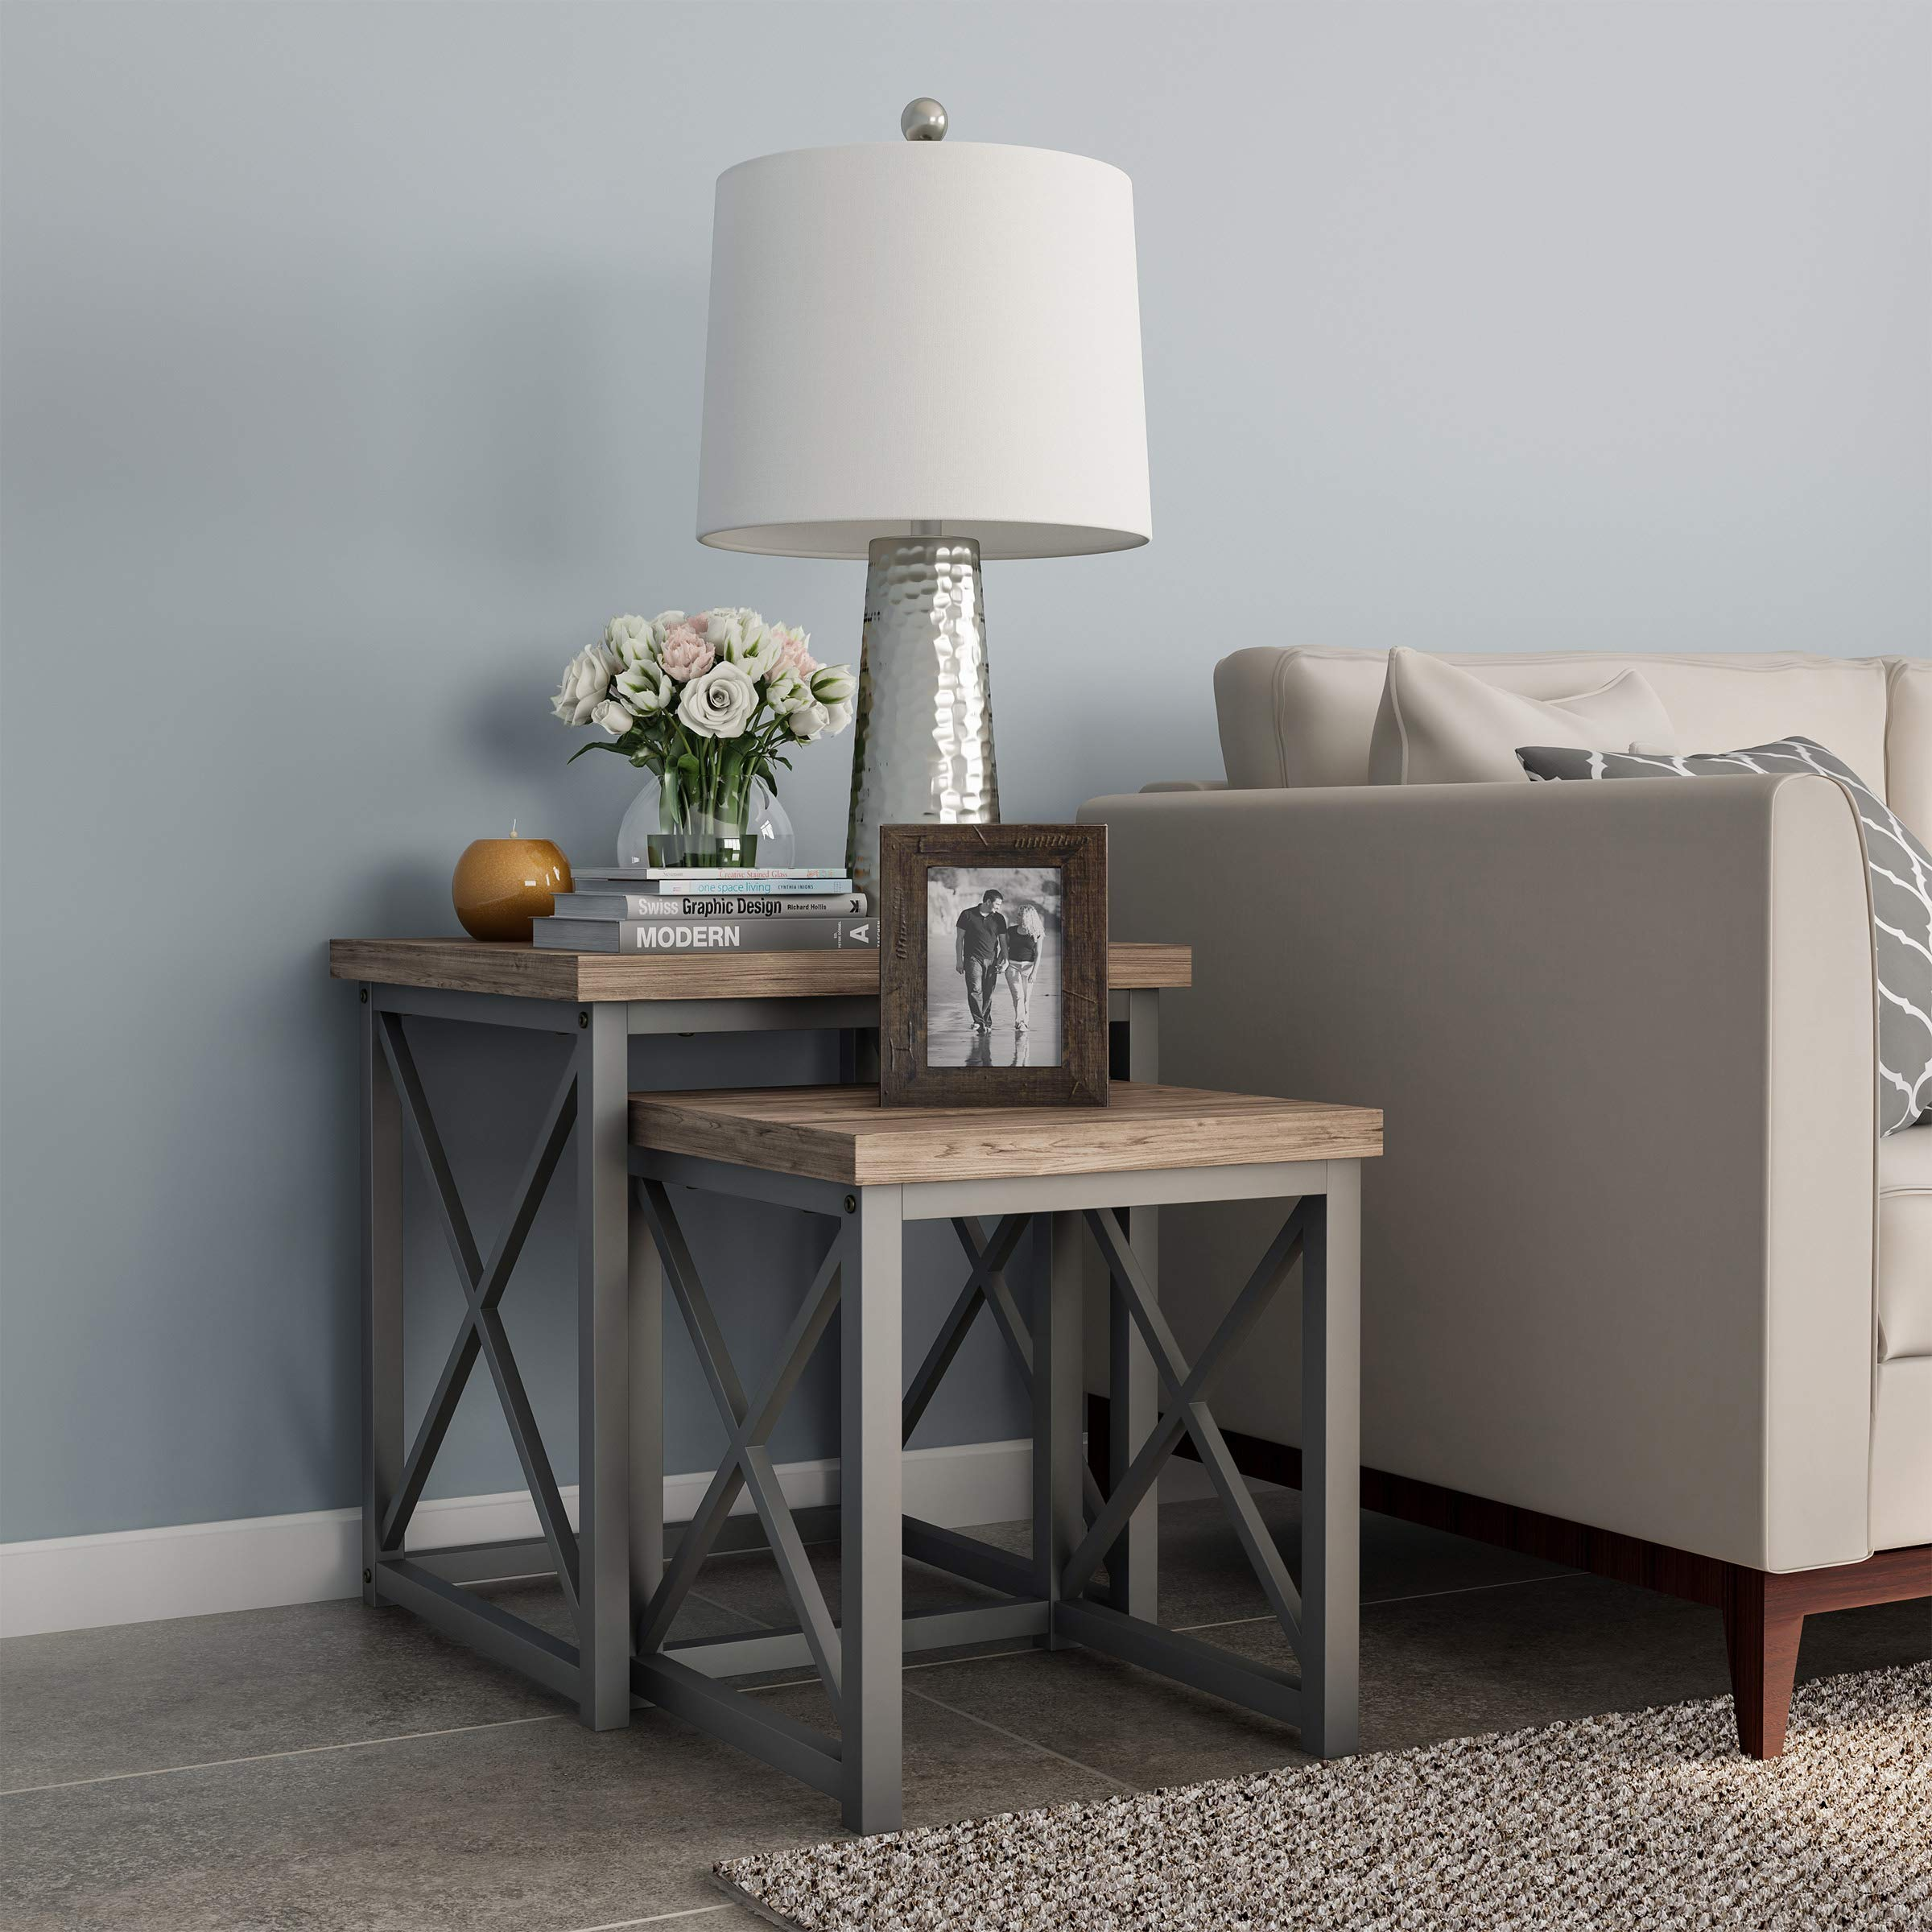 Lavish Home 80-FNT-2 Nesting Set of 2, Modern Woodgrain Look for Living Room Coffee Tables or Nightstands-Contemporary Home Accent Furniture (Gray), Tan, Tan by Lavish Home